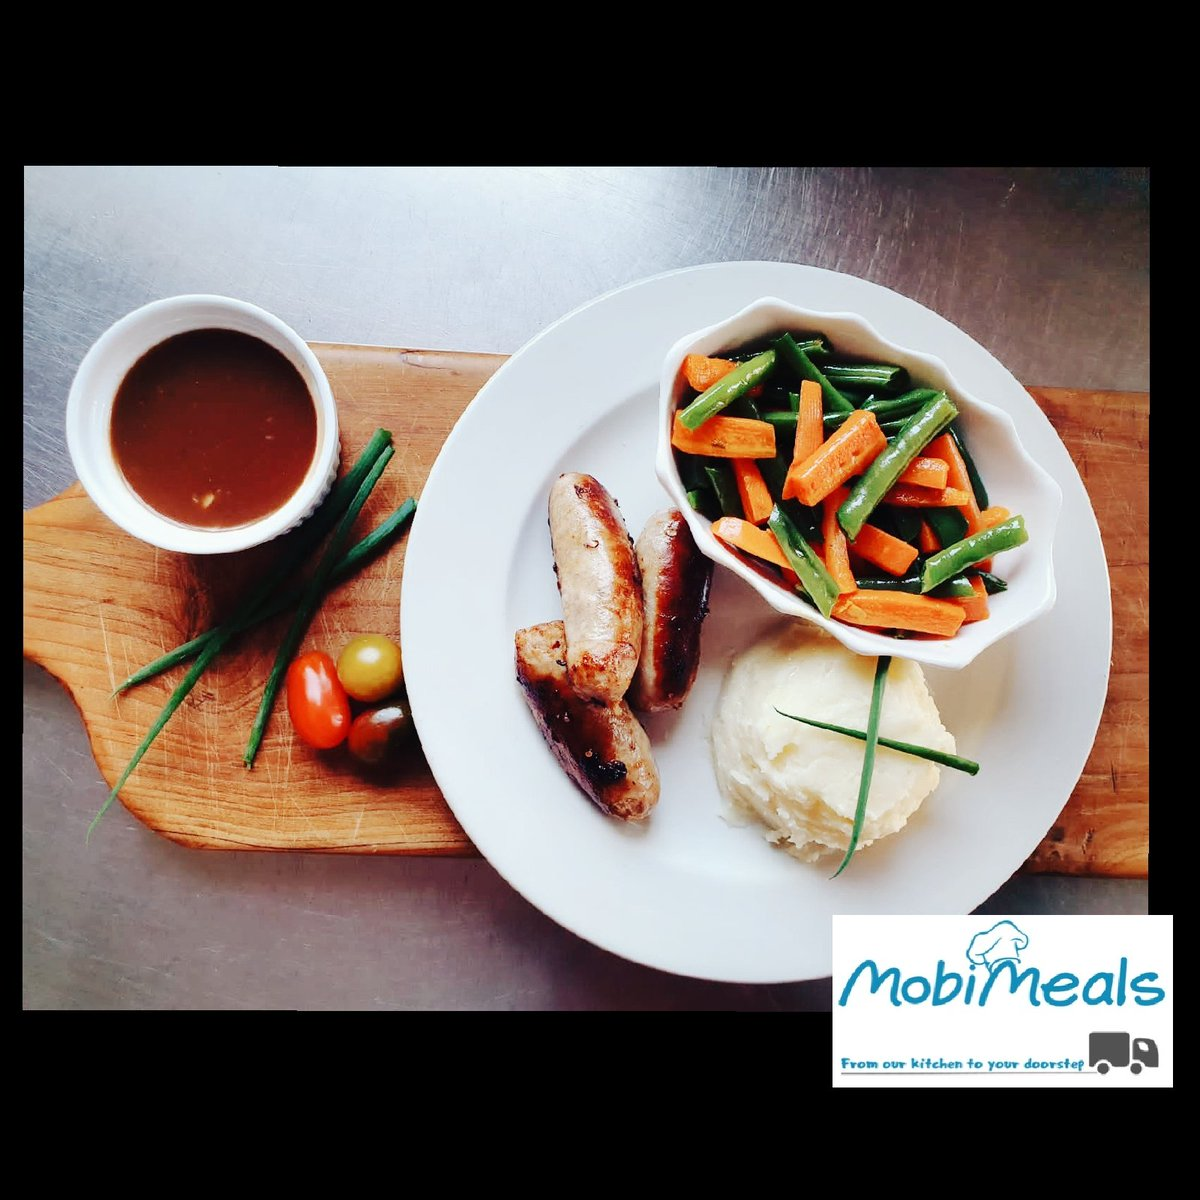 Serving you fresh, delicious home cooked meals is what we do best... Want a taste?  Order now on 073 456 6382 or email kitchen@mobimeals.co.za #food #foodblog #foodforfoodies #foodoftheday #goodfood #realfood #goodfoodgoodmood #lunch #dinner #yummyfood #yummy #freshdelivery